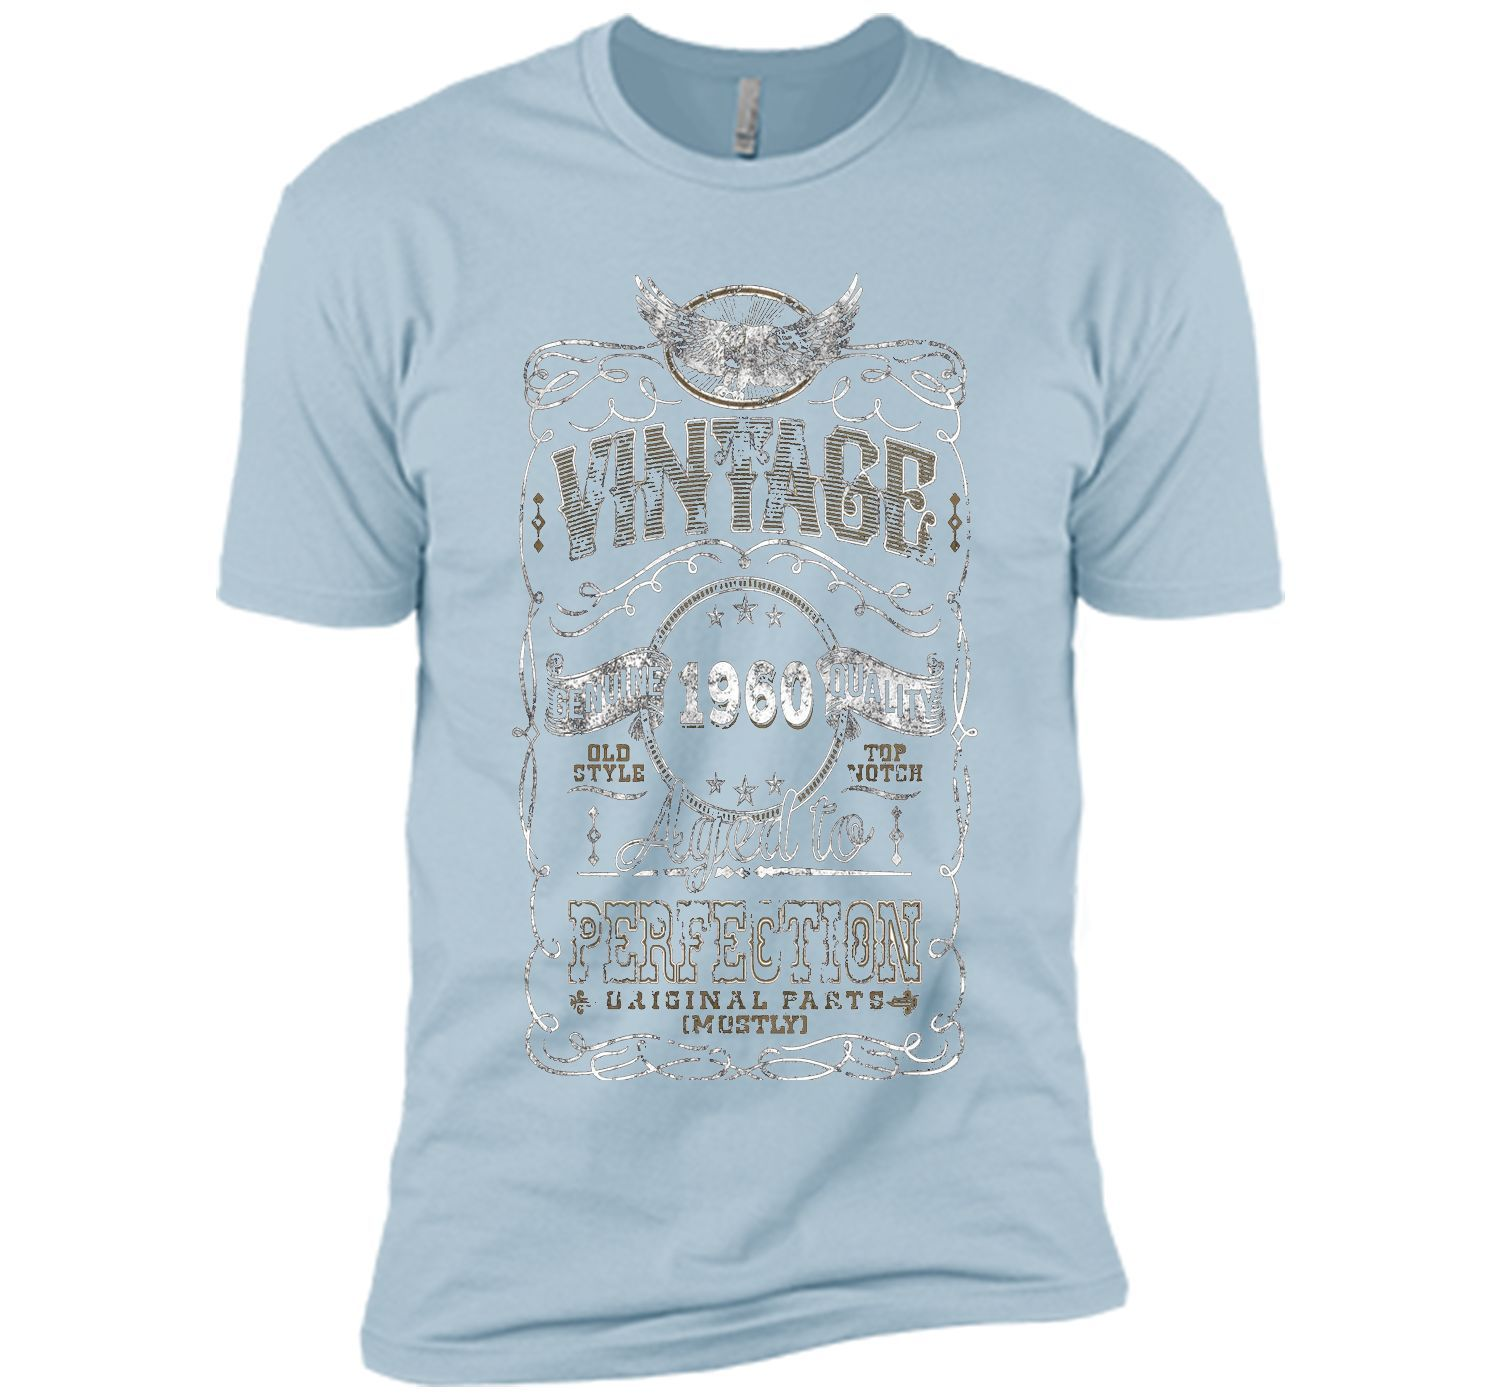 Vintage 1960 Aged To Perfection Mostly t shirt | Short sleeve tee